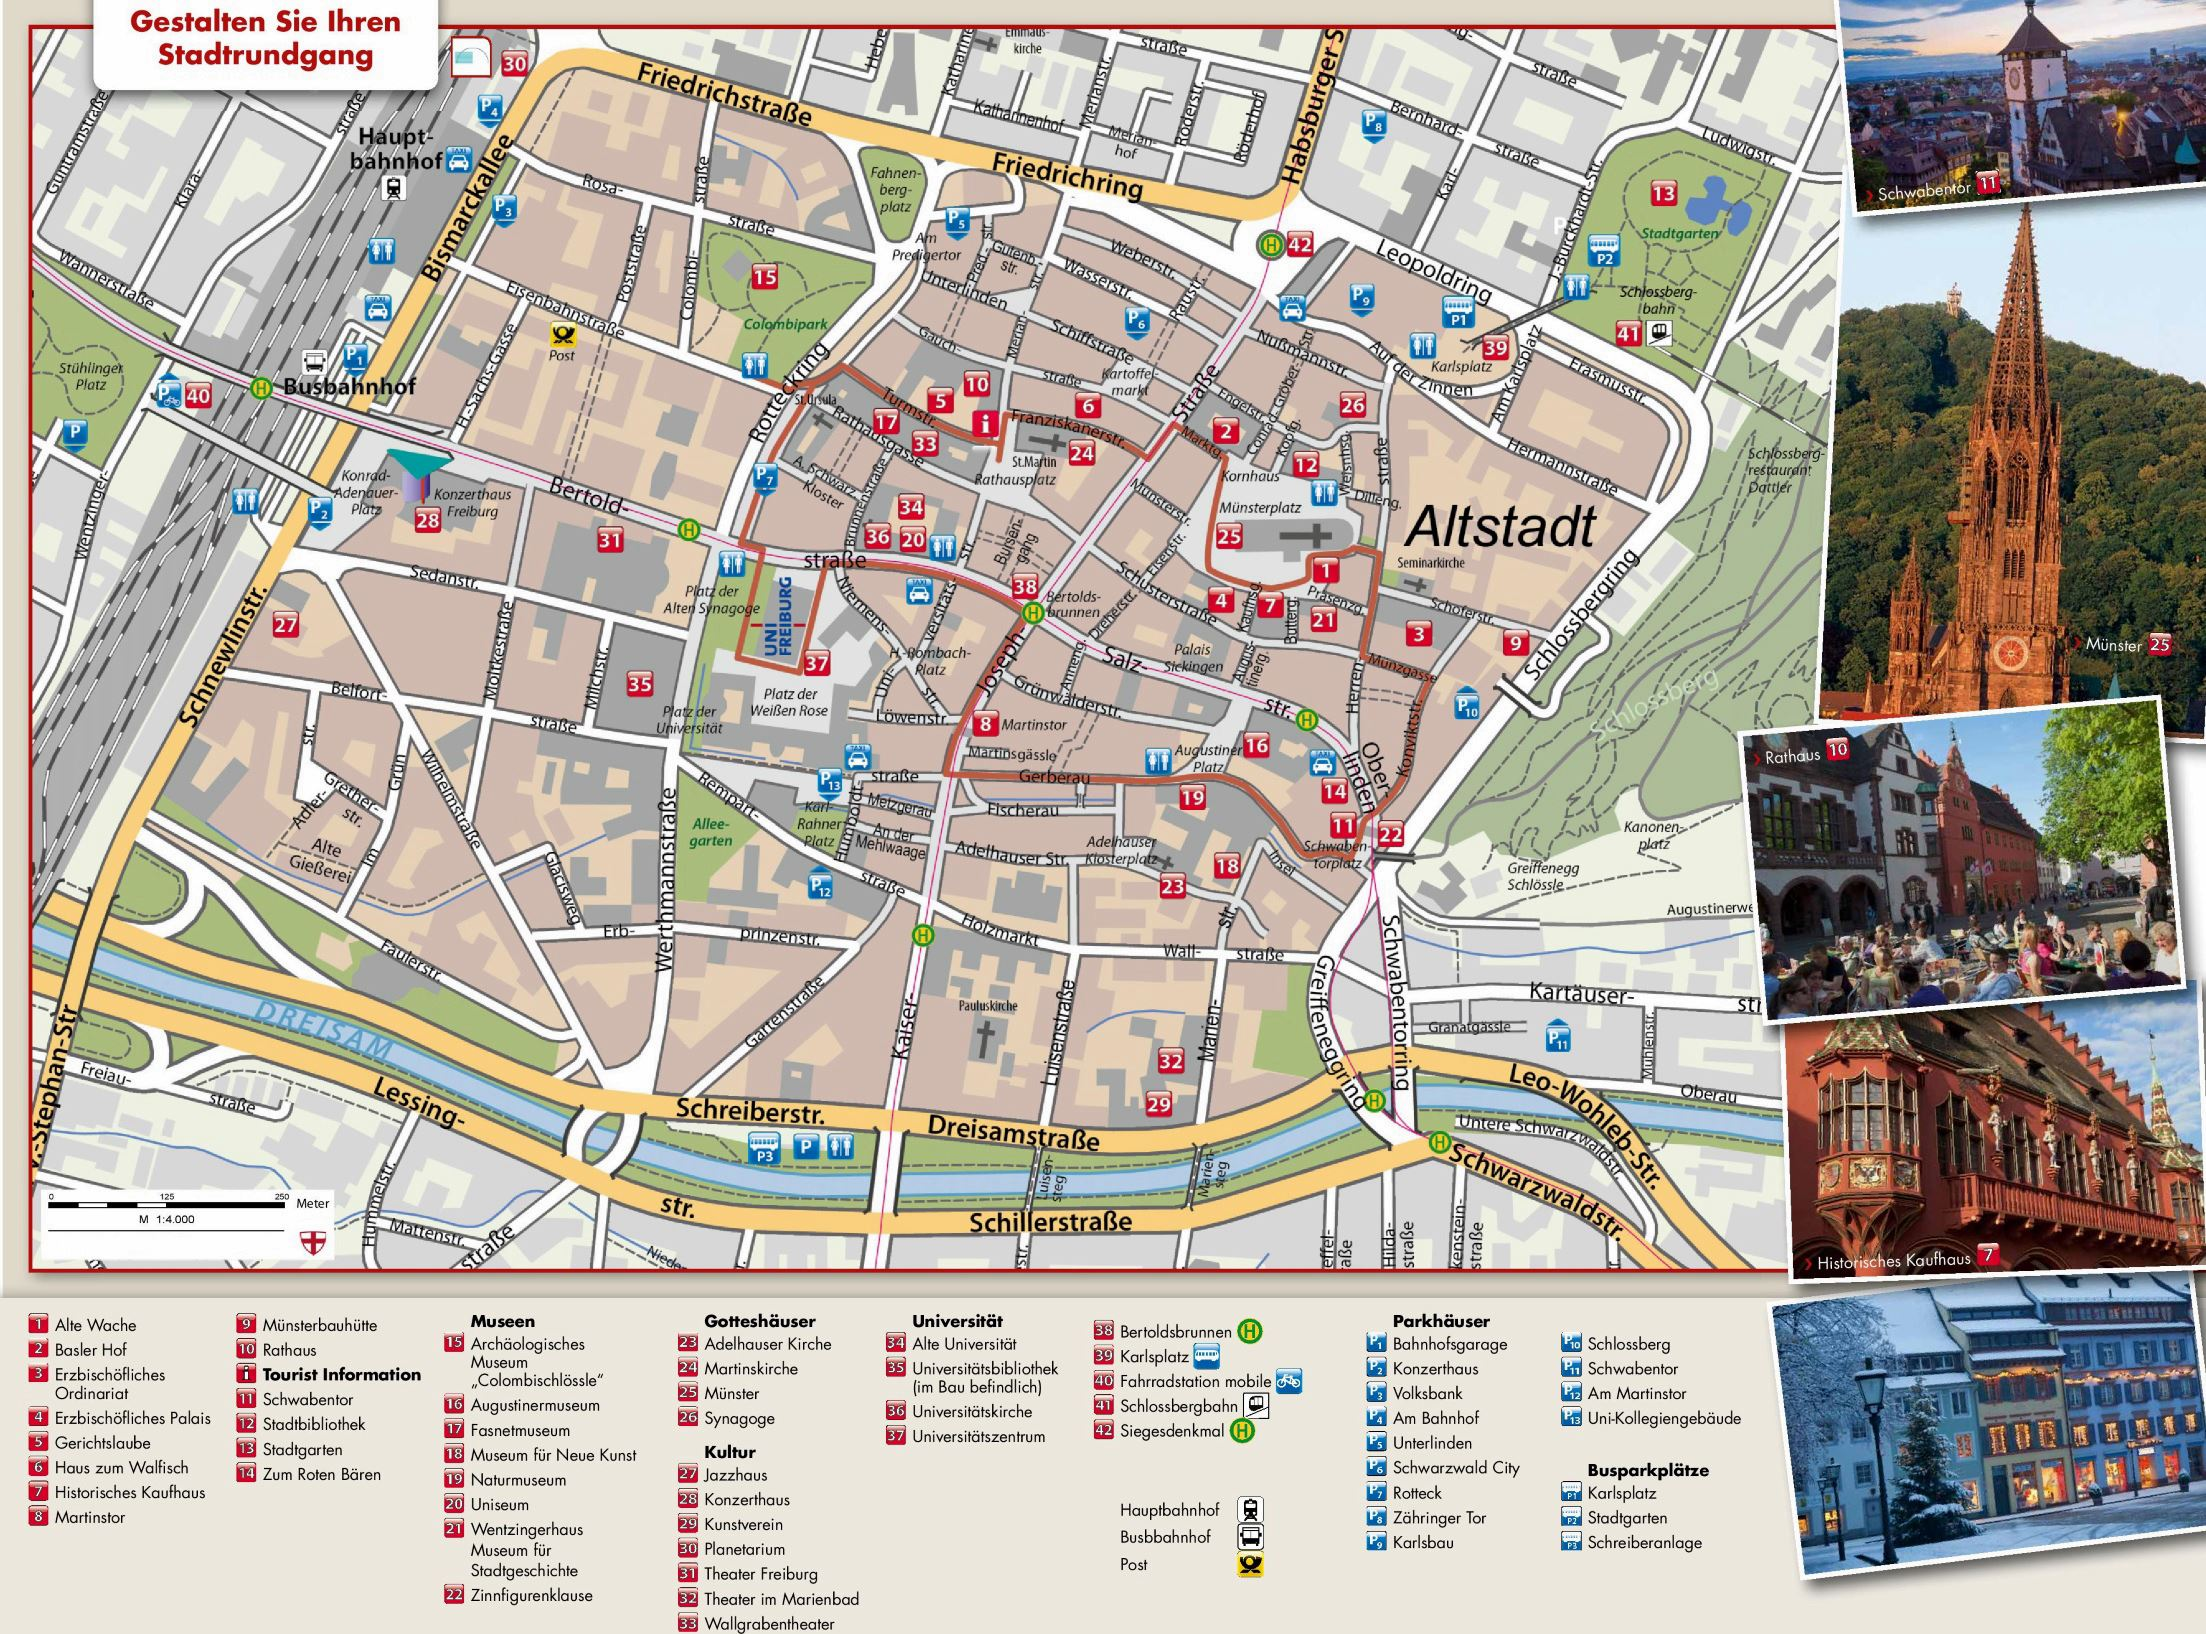 Large Freiburg im Breisgau Maps for Free Download and Print   High     Large map of Freiburg im Breisgau 1